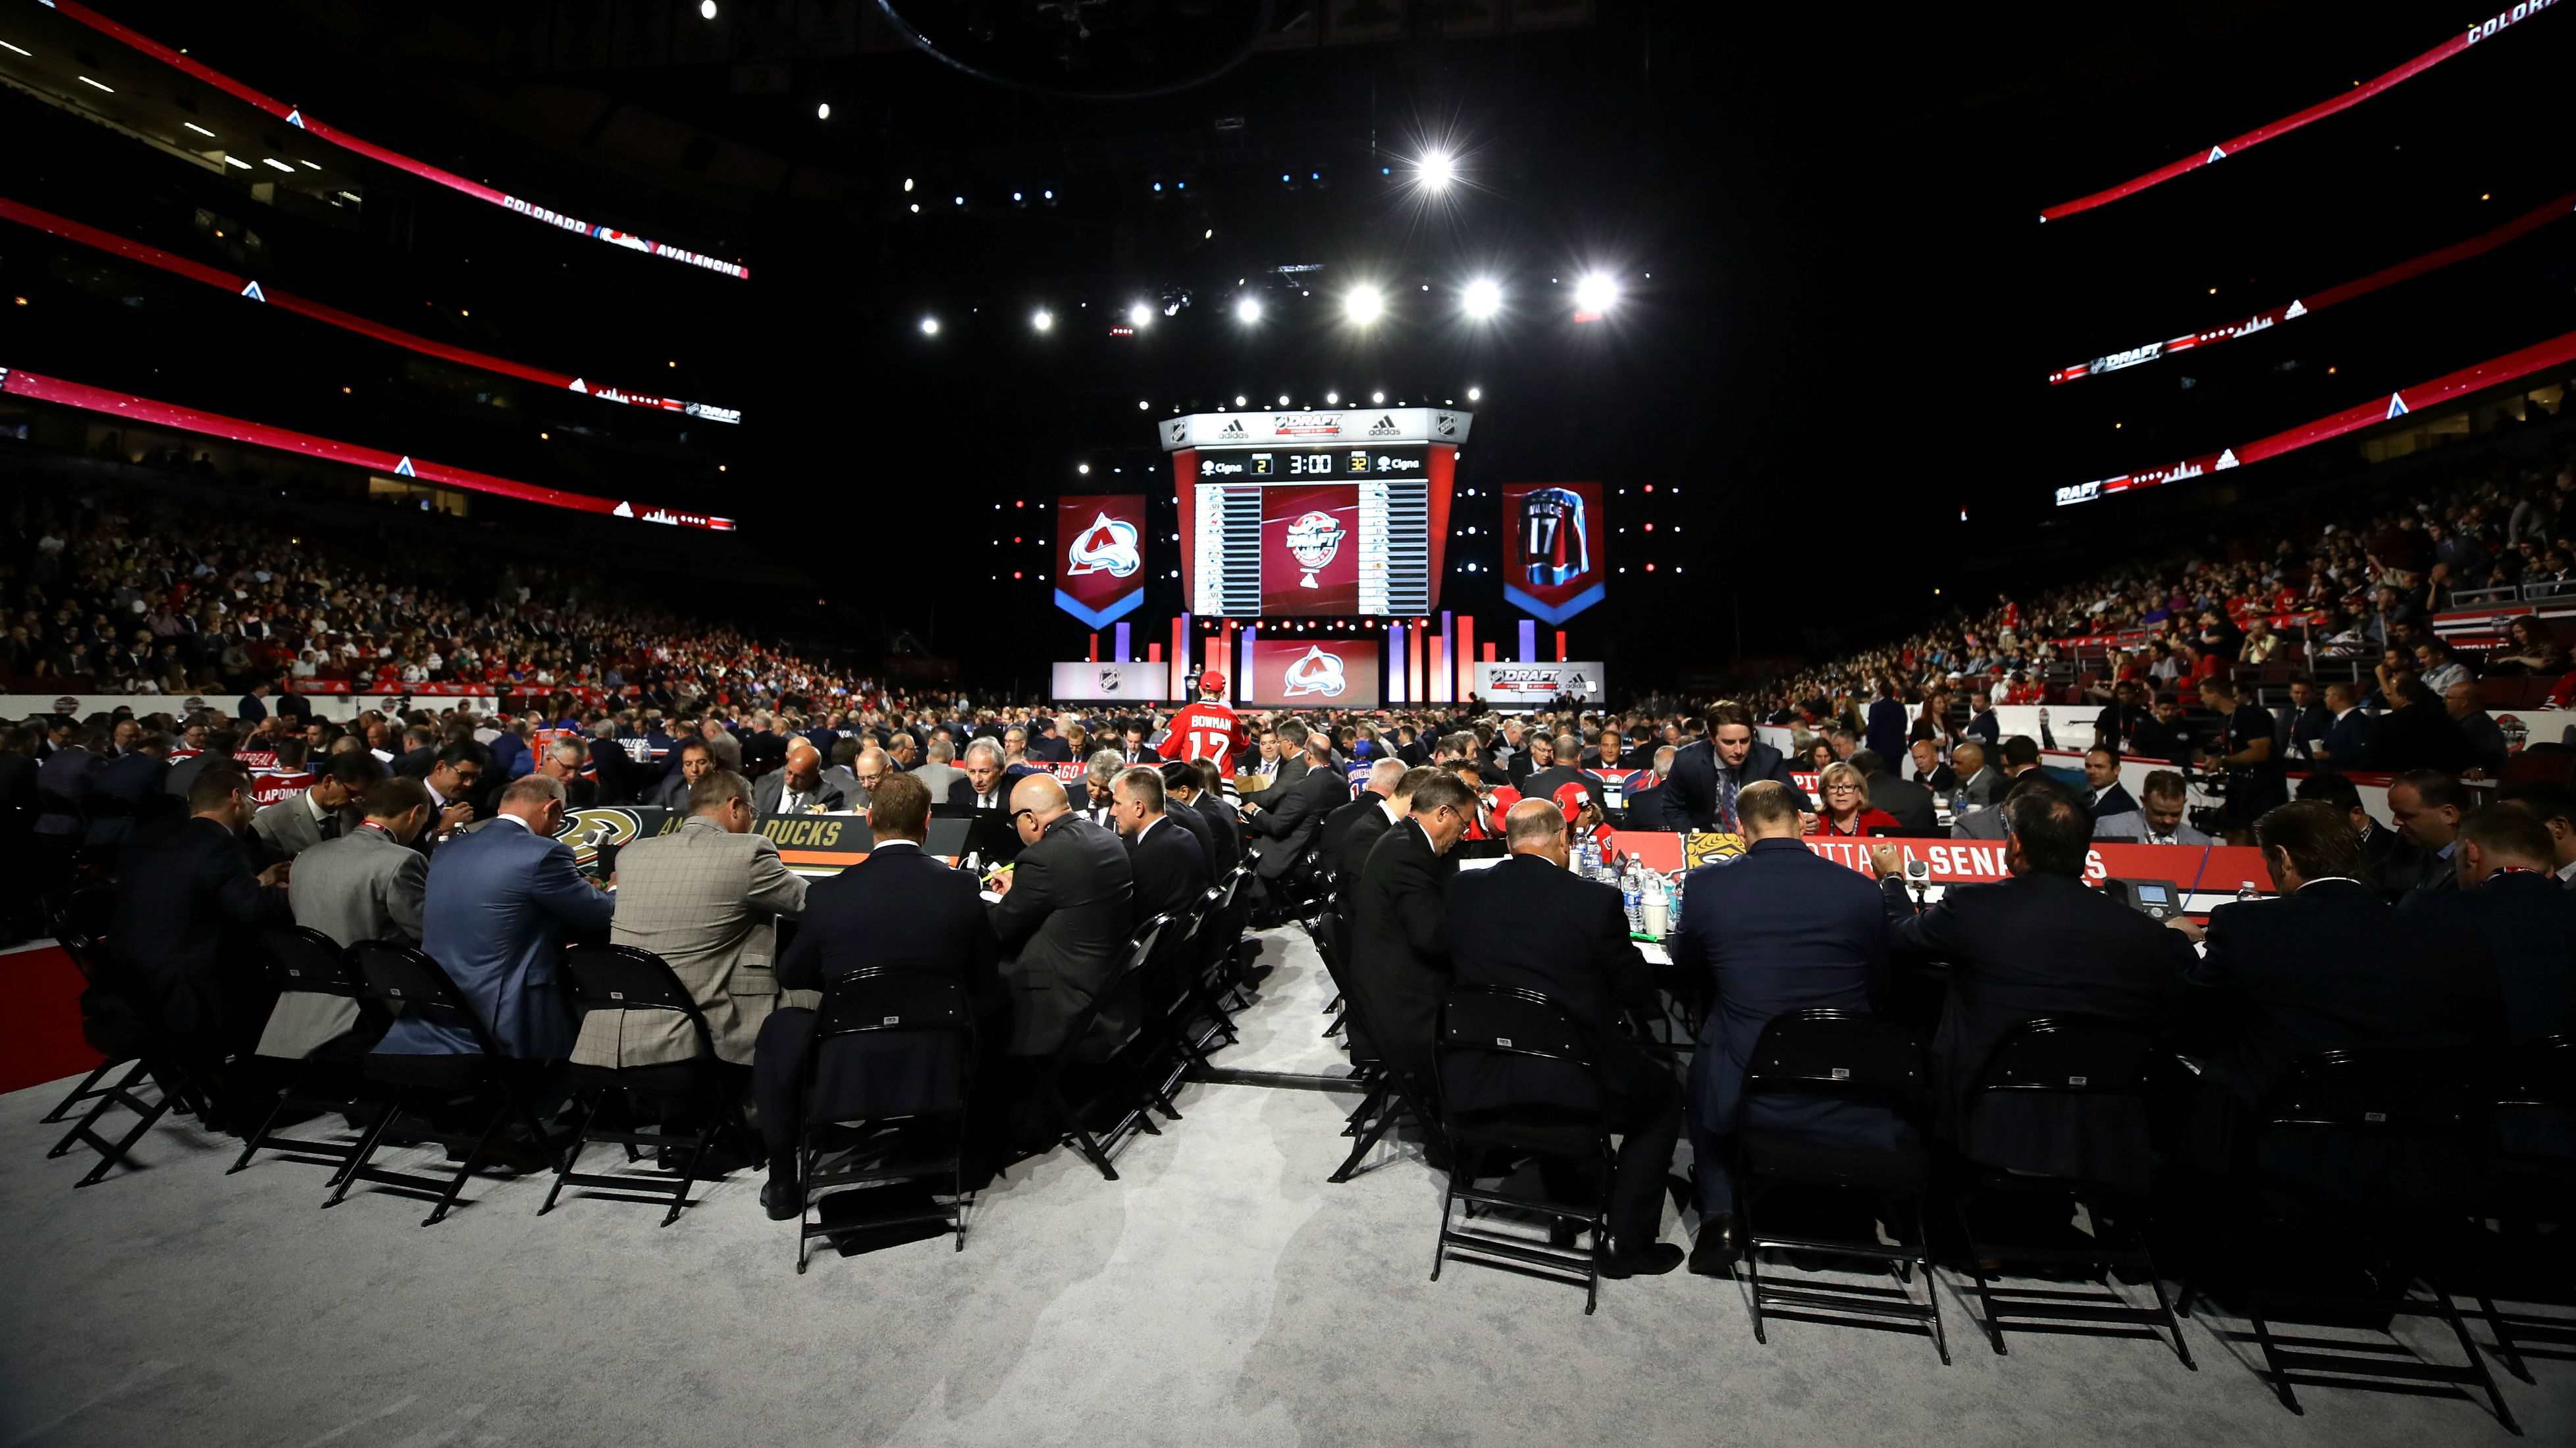 NHL Draft order 2019: Complete list of picks for Rounds 1-7